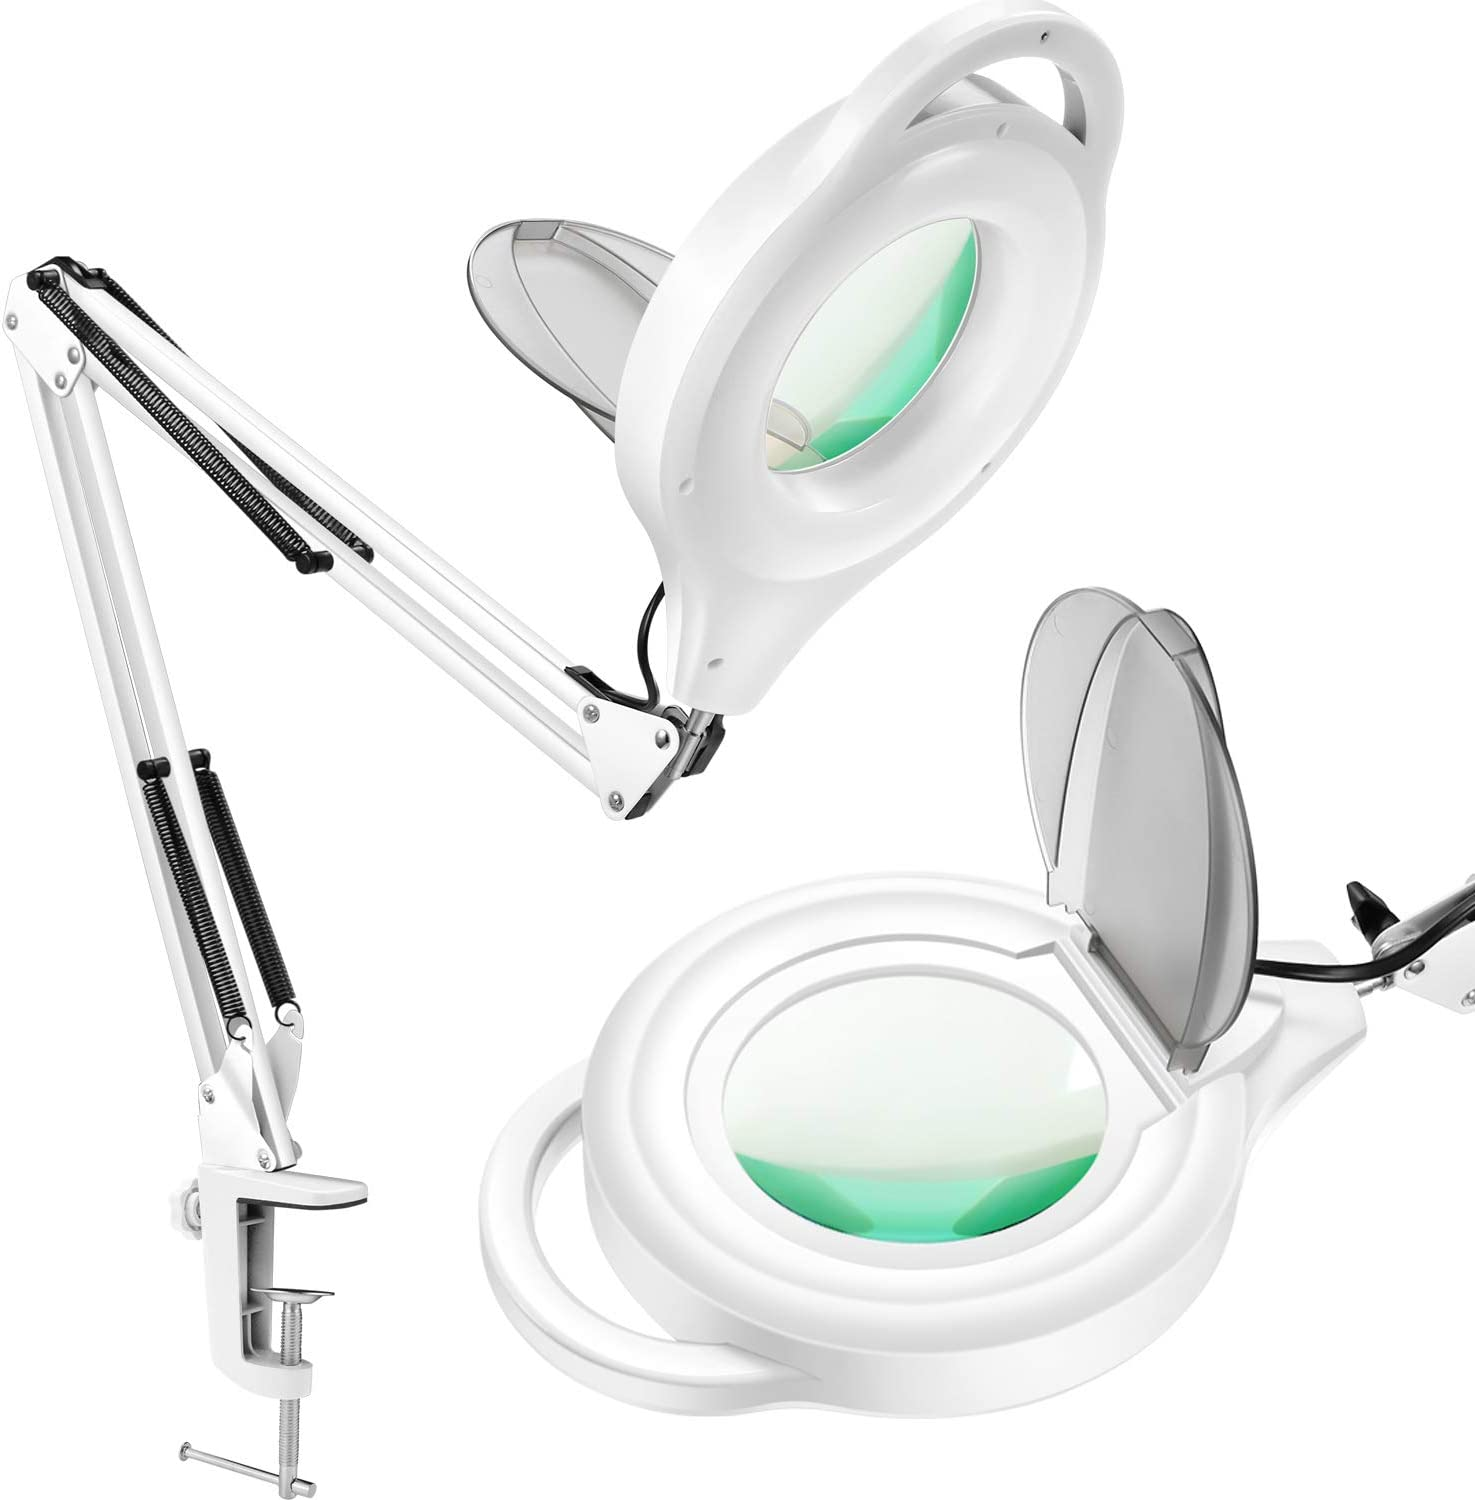 TOMSOO LED Dimmable Magnifying Lamp with Clamp – 1,200 Lumens Bright Lighted 5-Diopter Real Glass Magnifier with Adjustable Swivel Arm, Daylight Light for Reading, Craft, Hobby, Close Work, Workbench